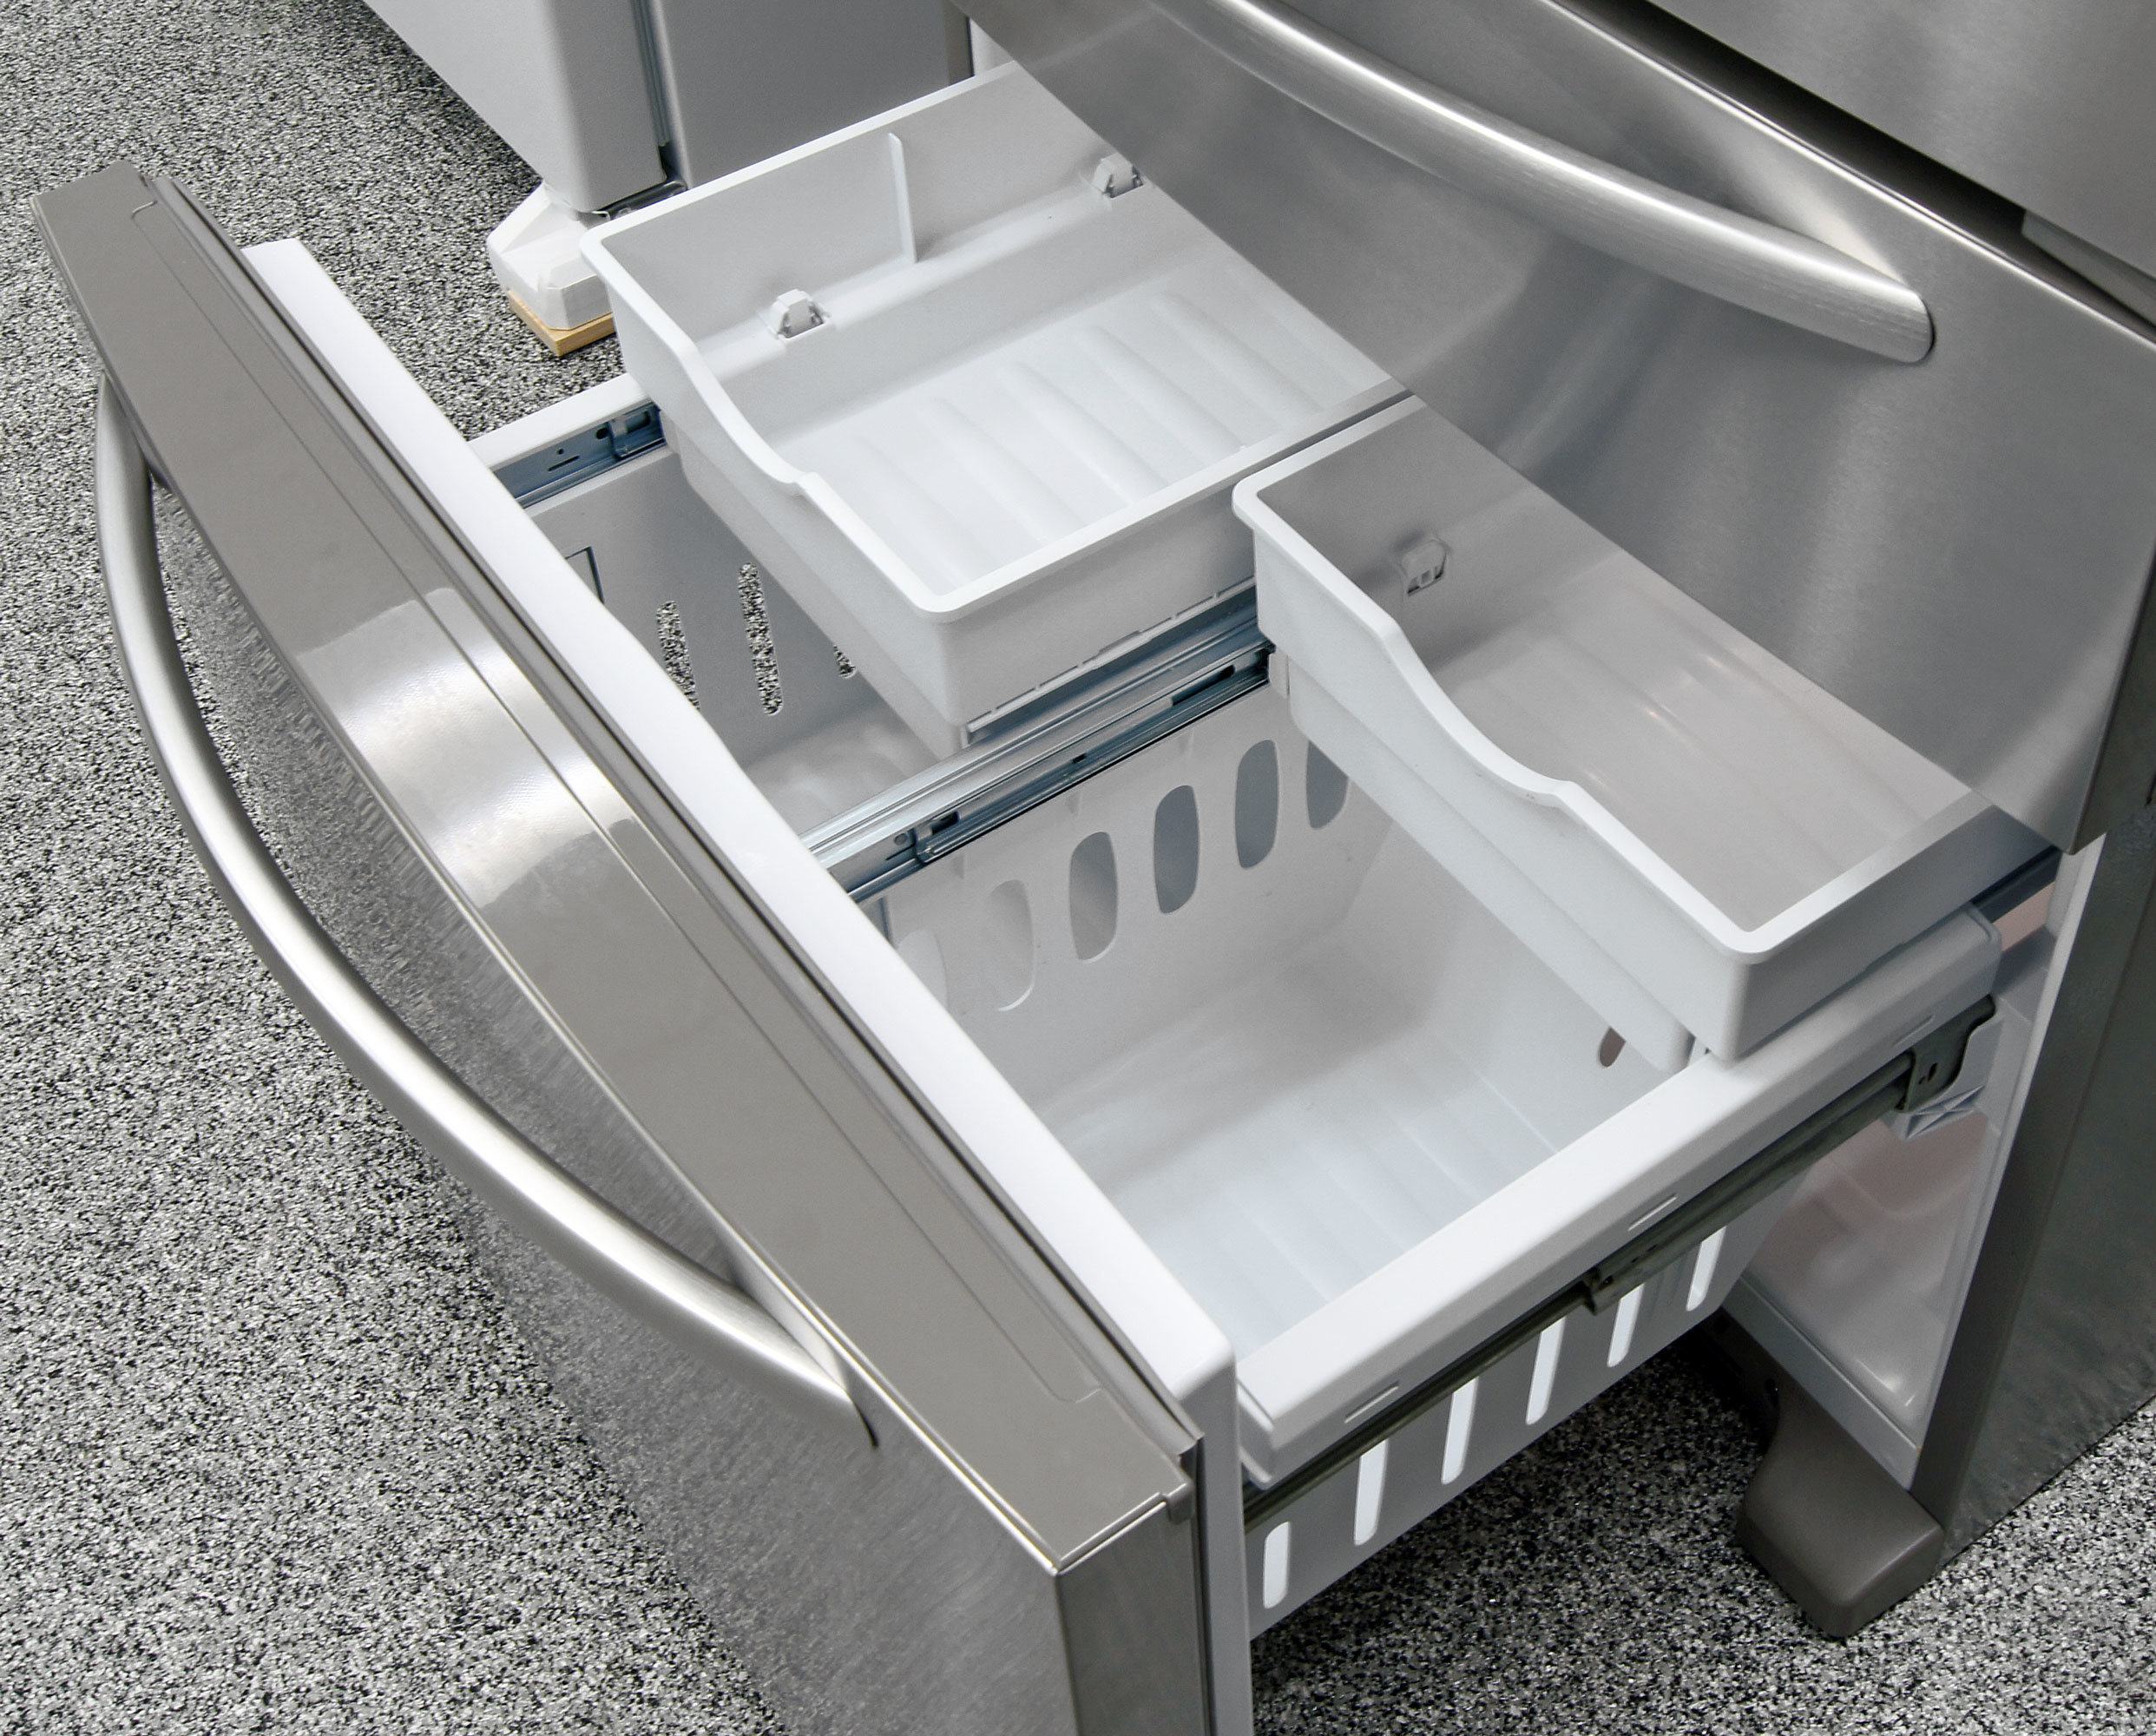 Extra sliding buckets in the KitchenAid KFXS25RYMS's freezer take up a little more space, but substantially improve food organization.